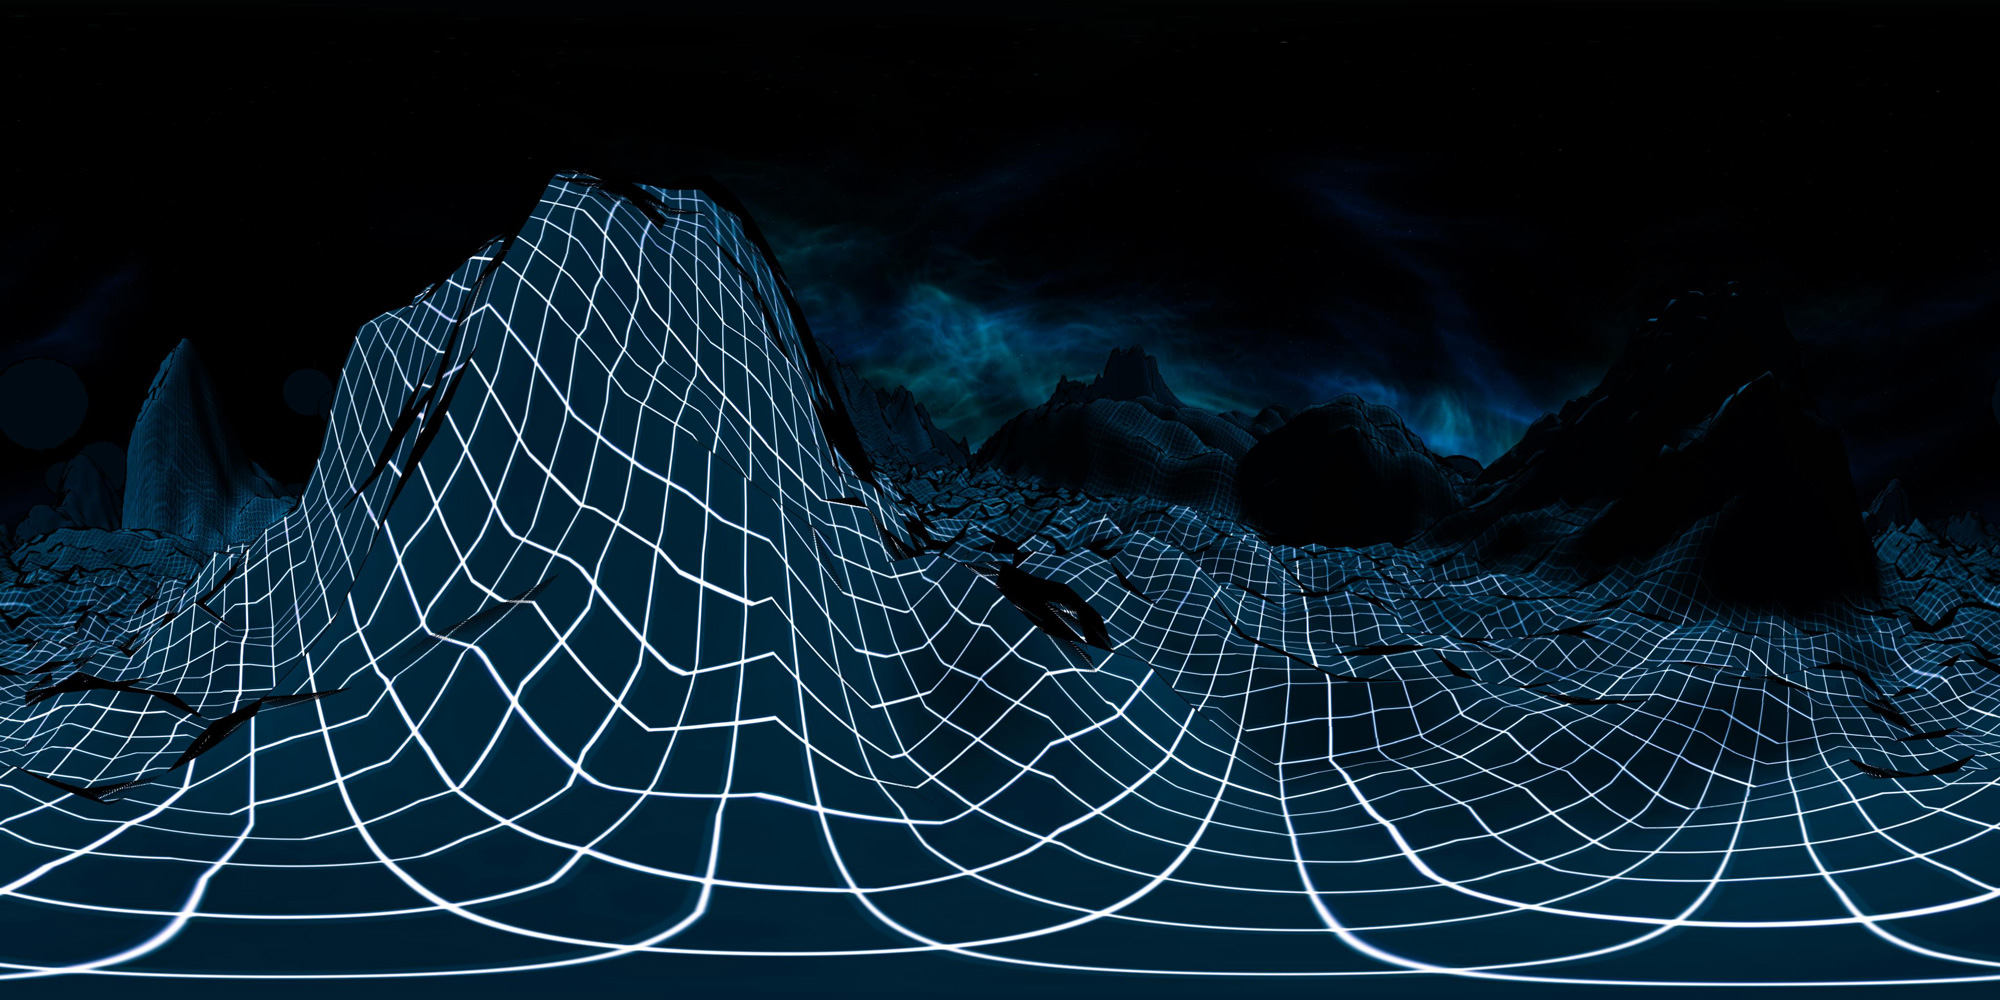 Another still image of the virtual reality music video created by Onionlab for the Catalan artist Undo.